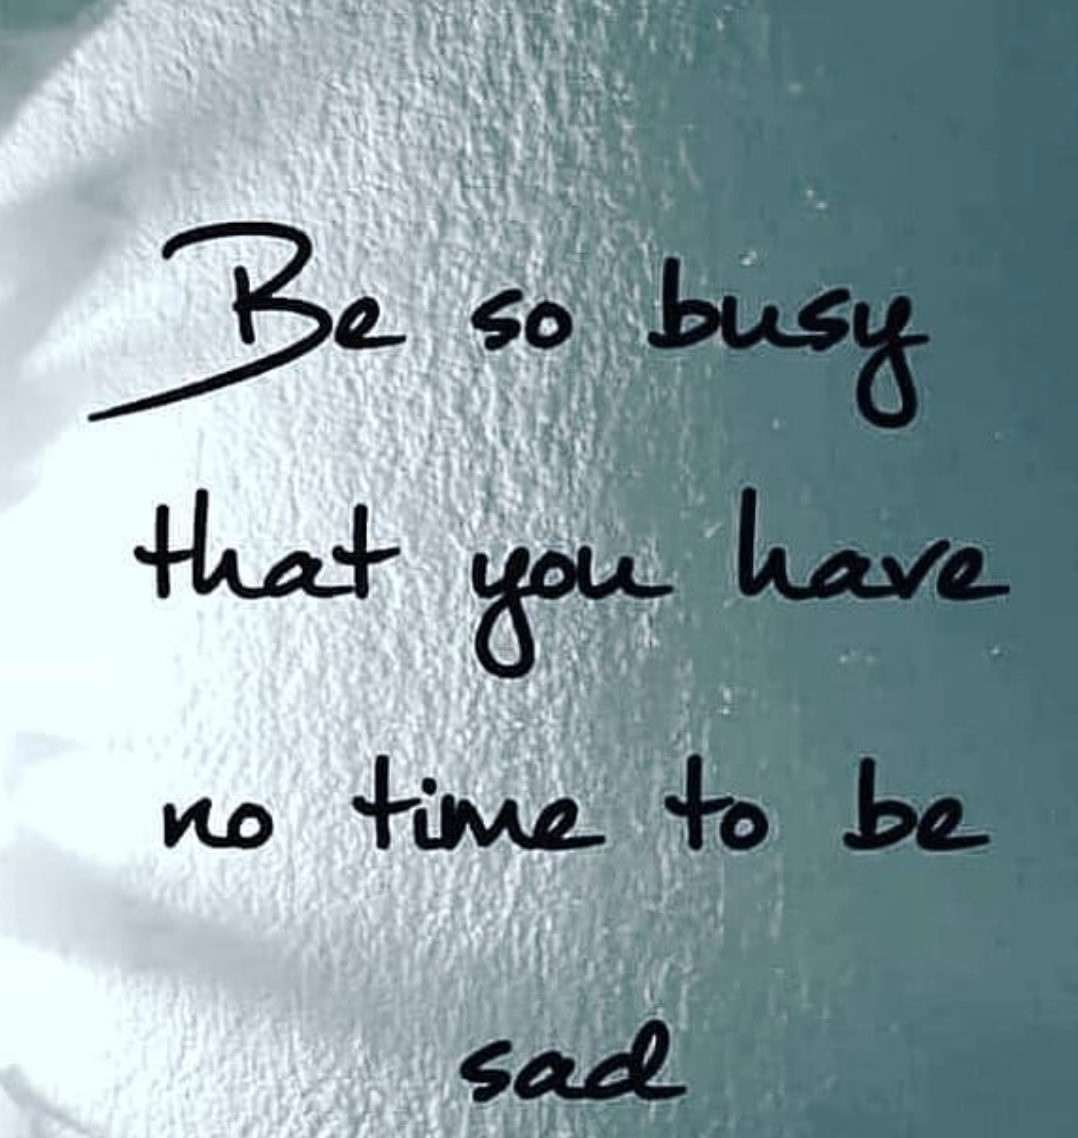 [Image] Be so busy that you have no time to be sad.